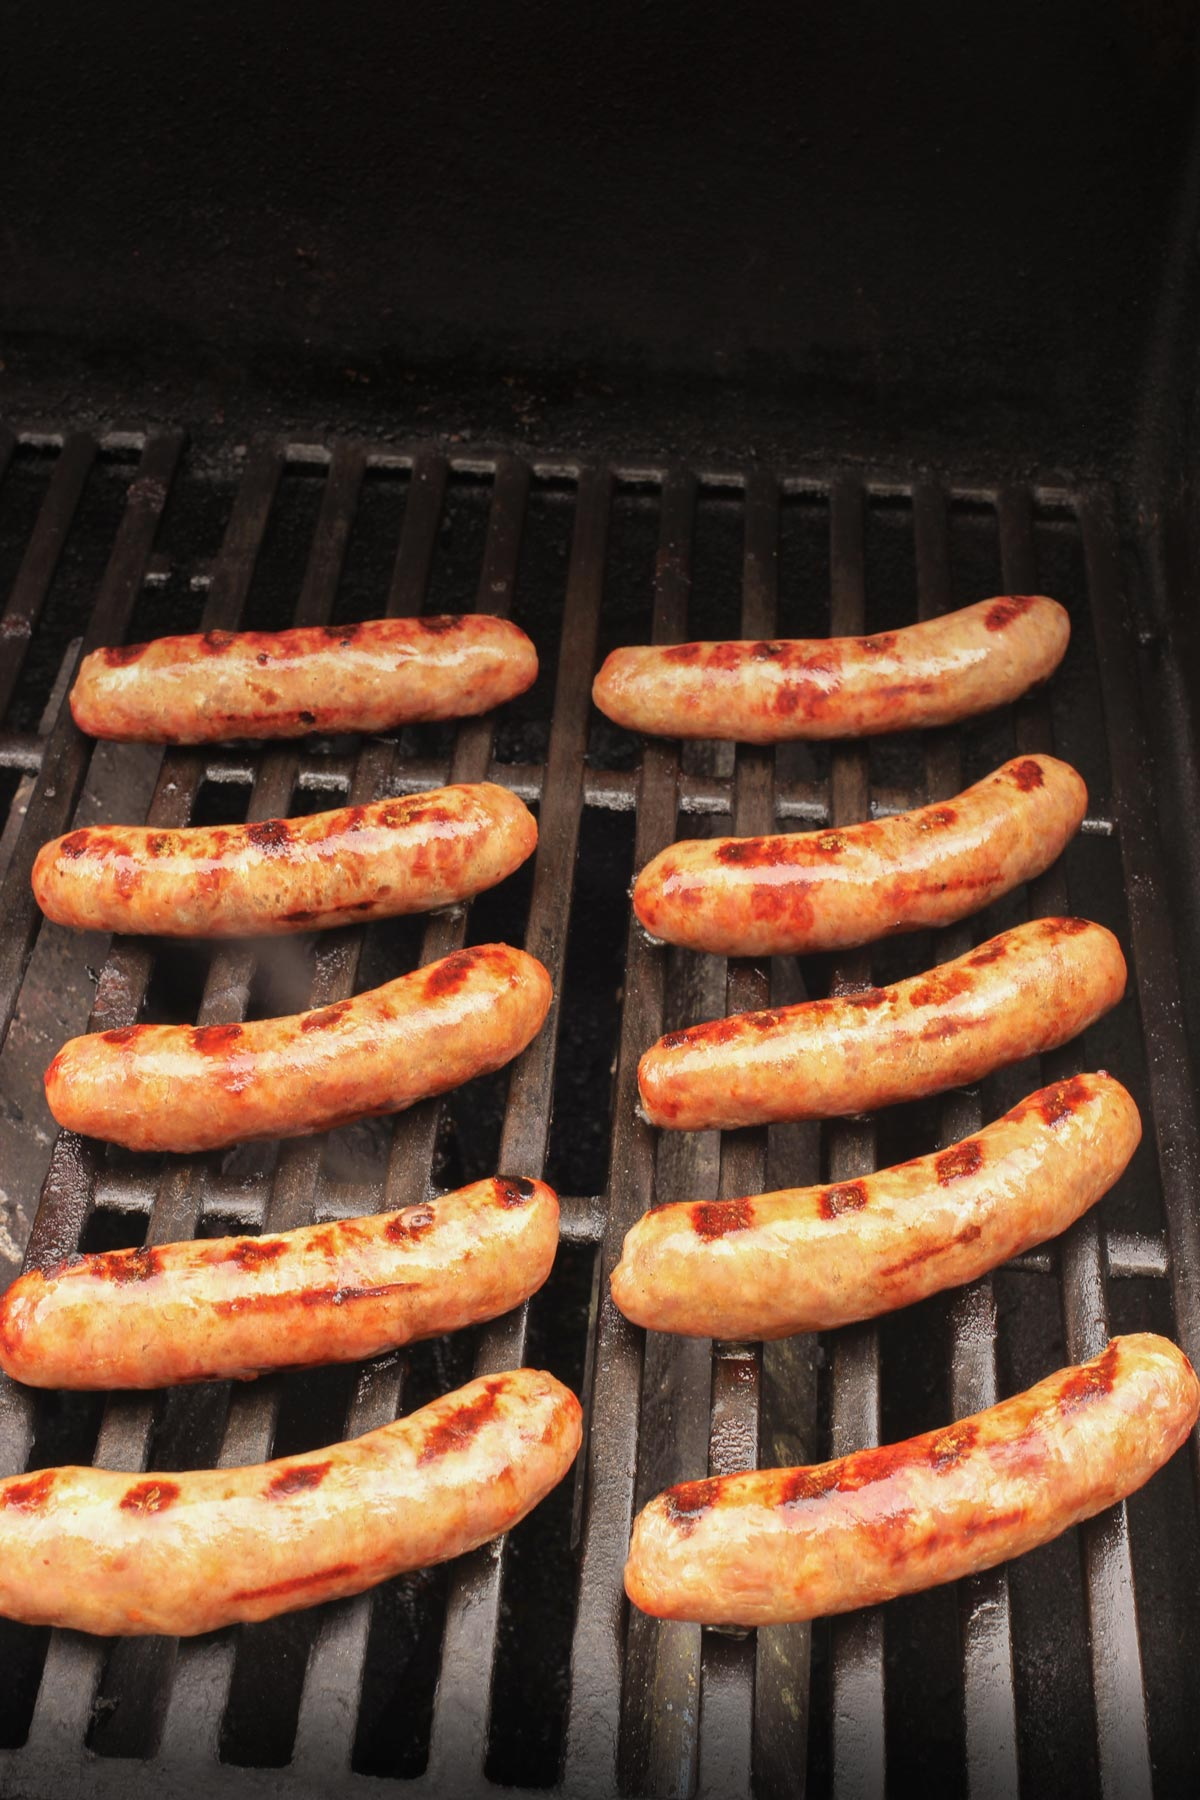 grilled brats lined up on a hot weber grill.